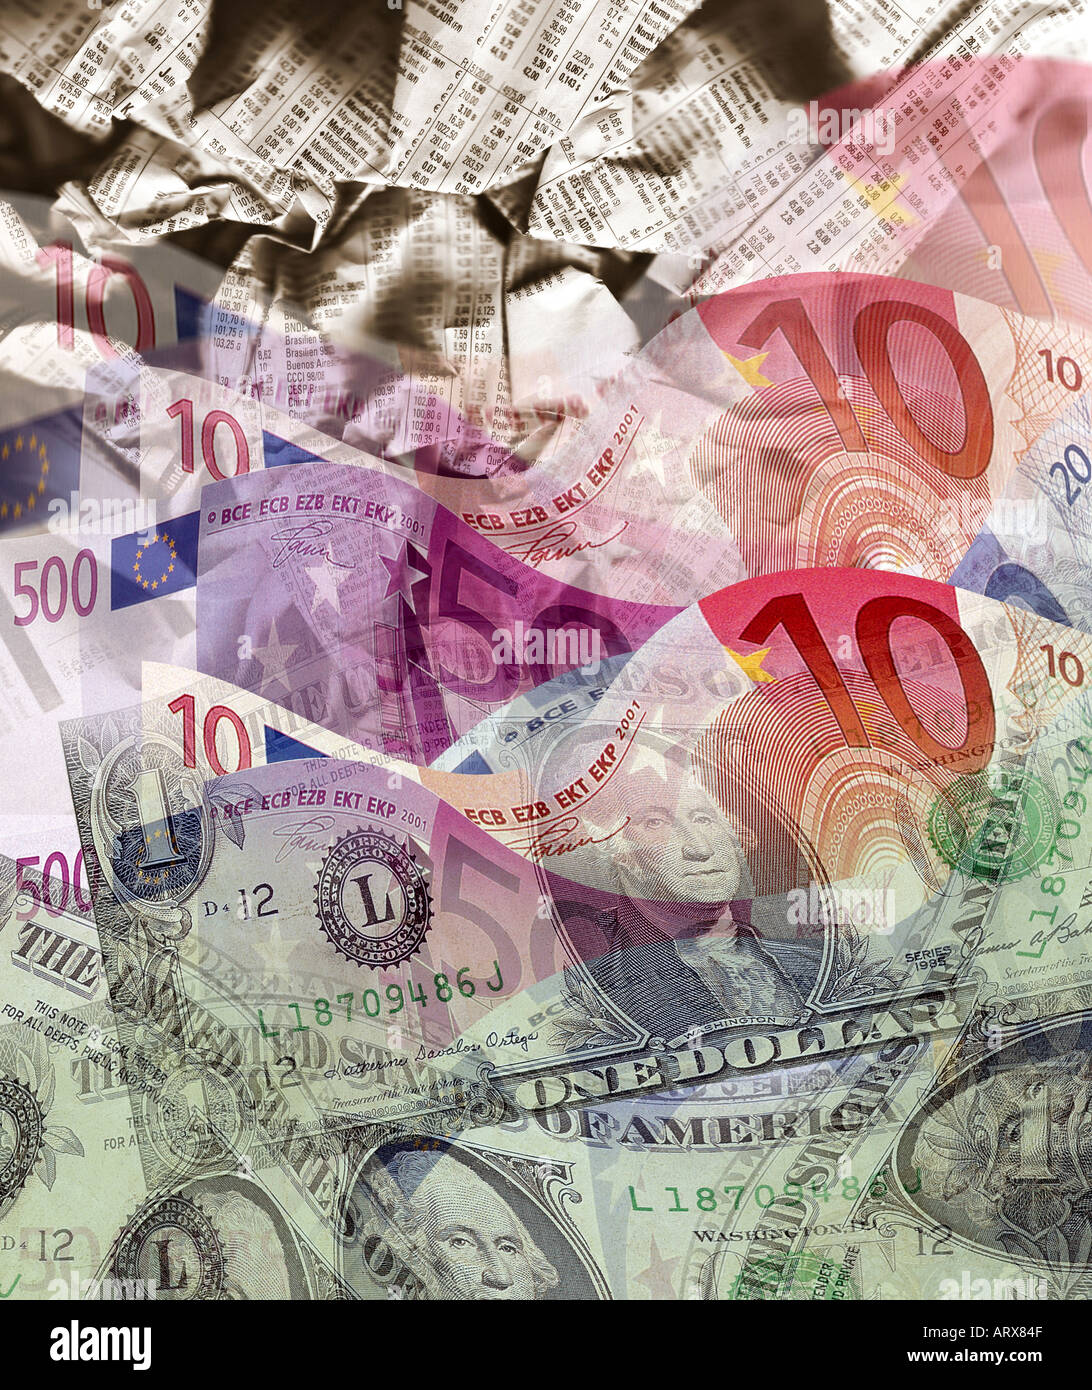 DIGITAL CONCEPT: International Currency - Stock Image